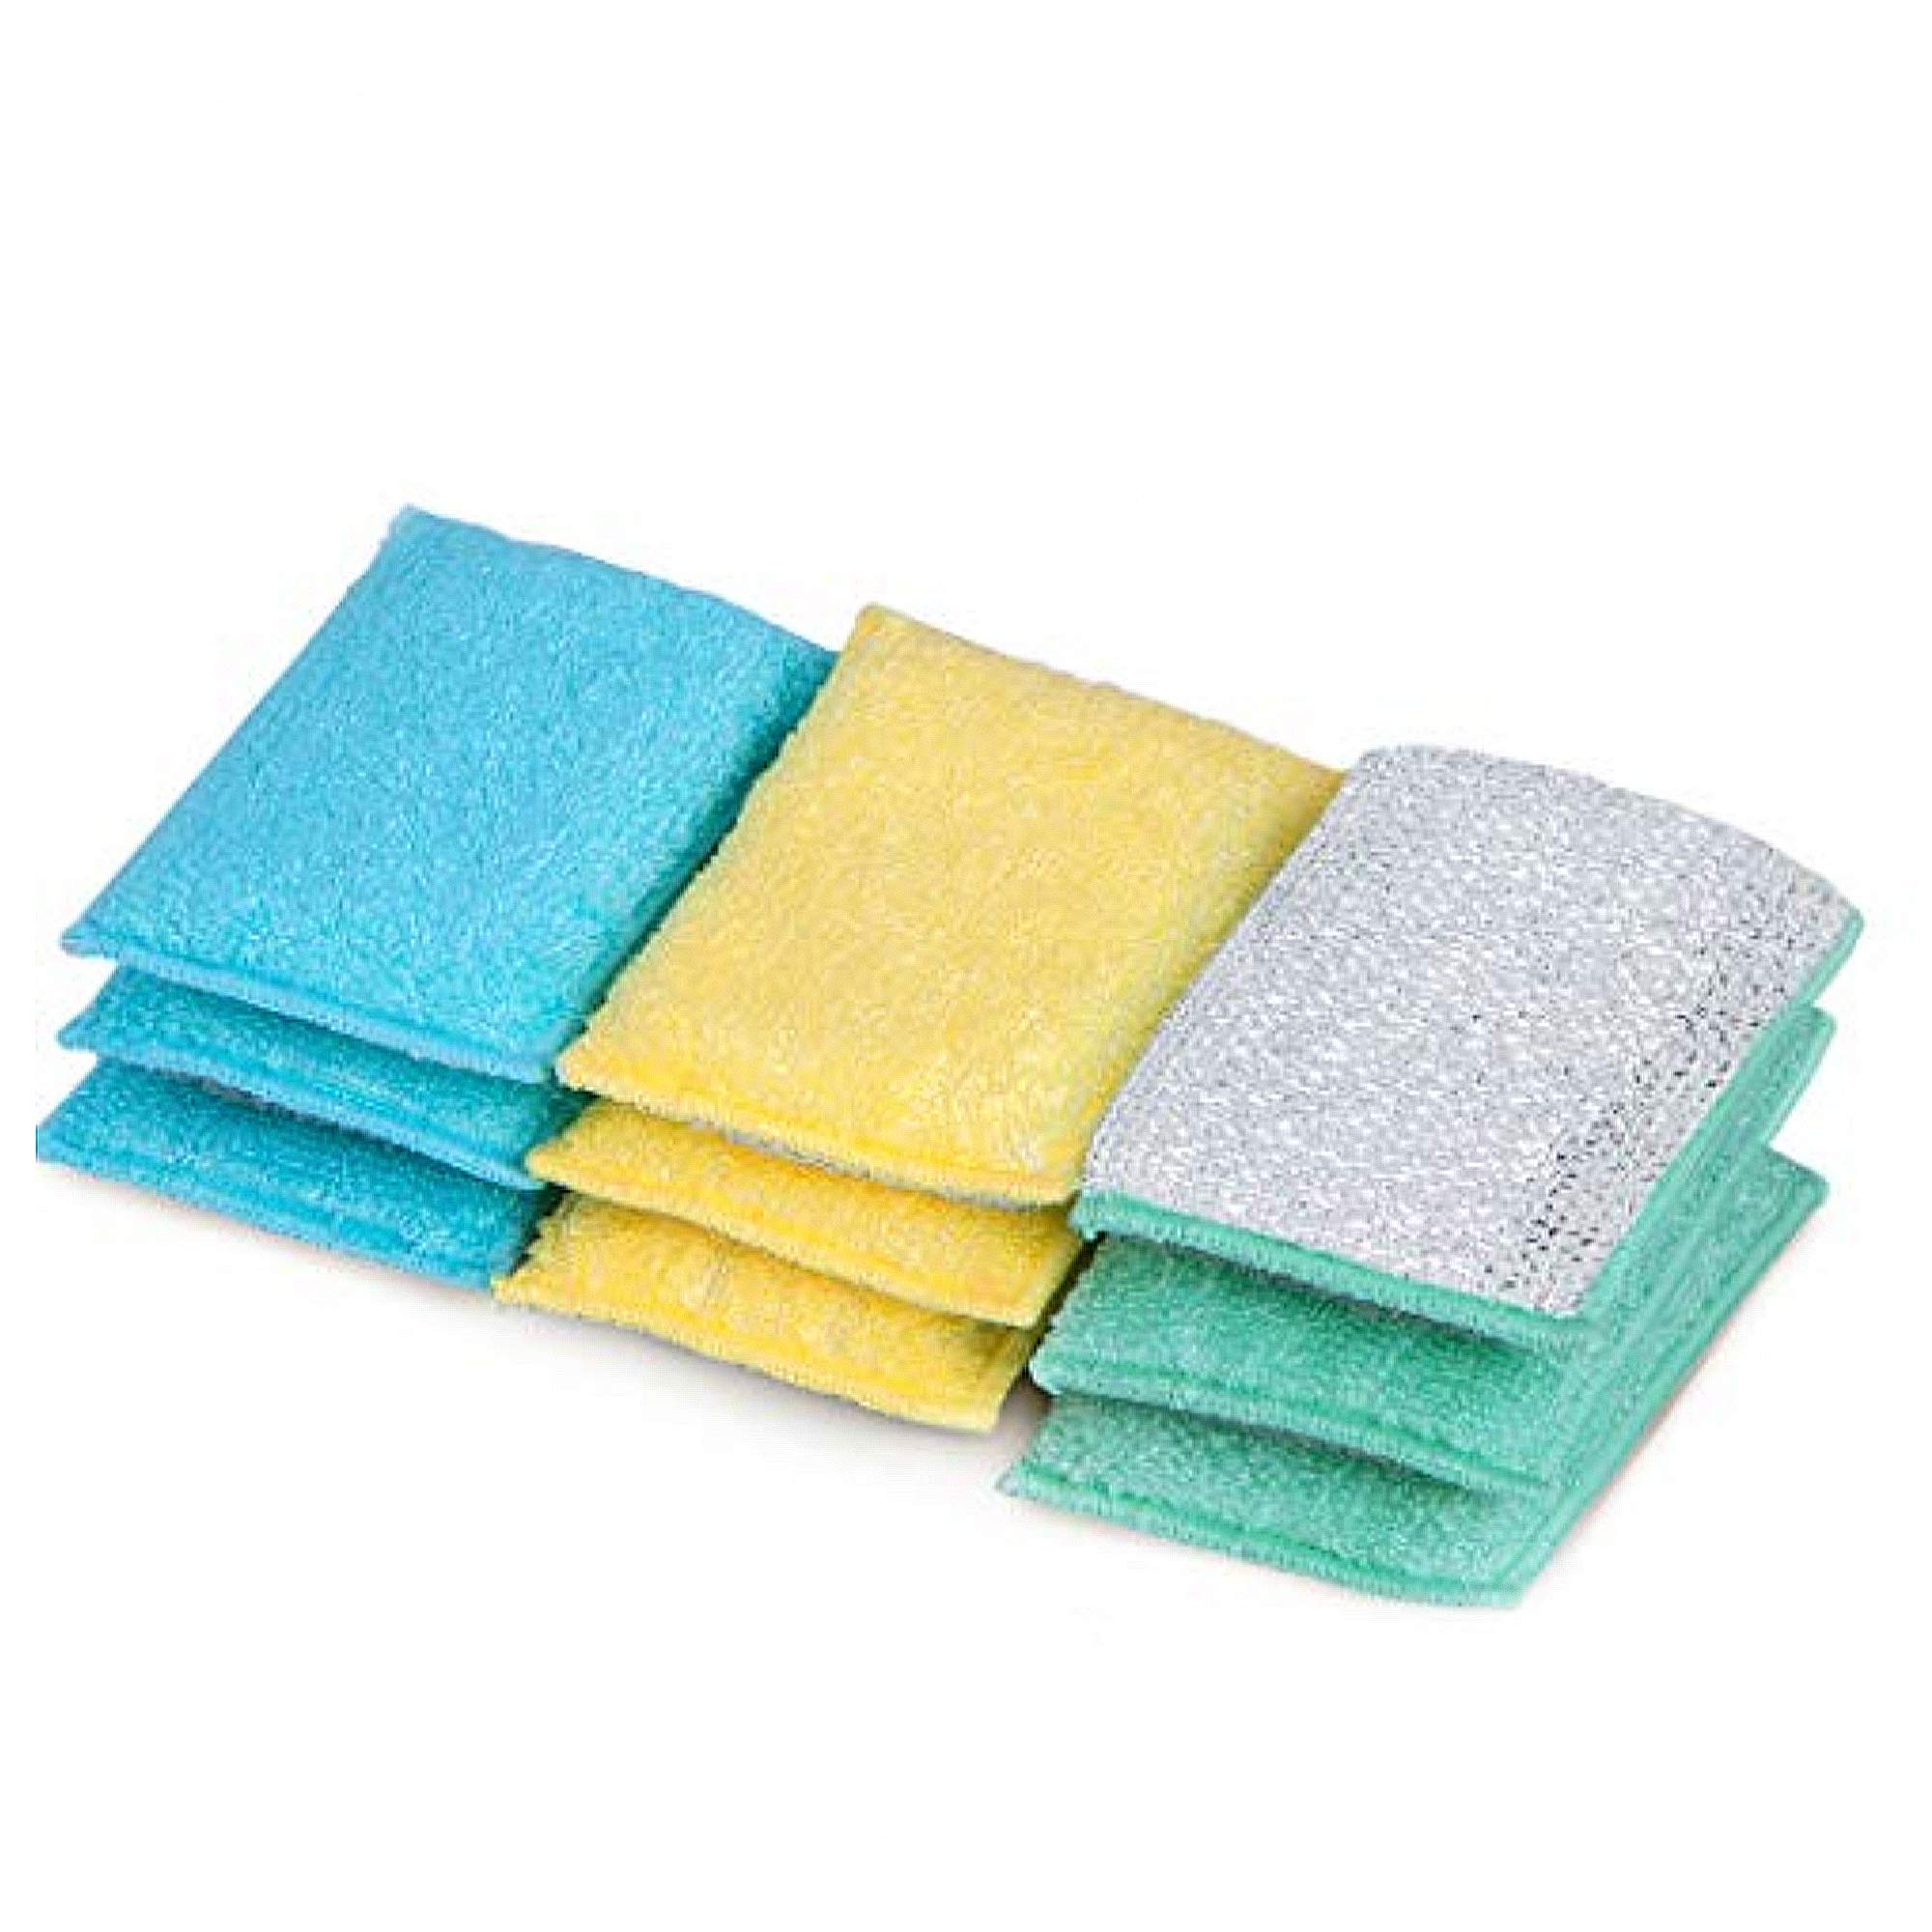 Smart Design SmartCloth Scrub Sponge w/Antimicrobial Odorless Fibers - Ultra Absorbent - Soft & Metallic Scrub Side - for Cleaning, Dishes, Hard Stains - Kitchen (Heavy Duty 9 Pack) [Pastels]